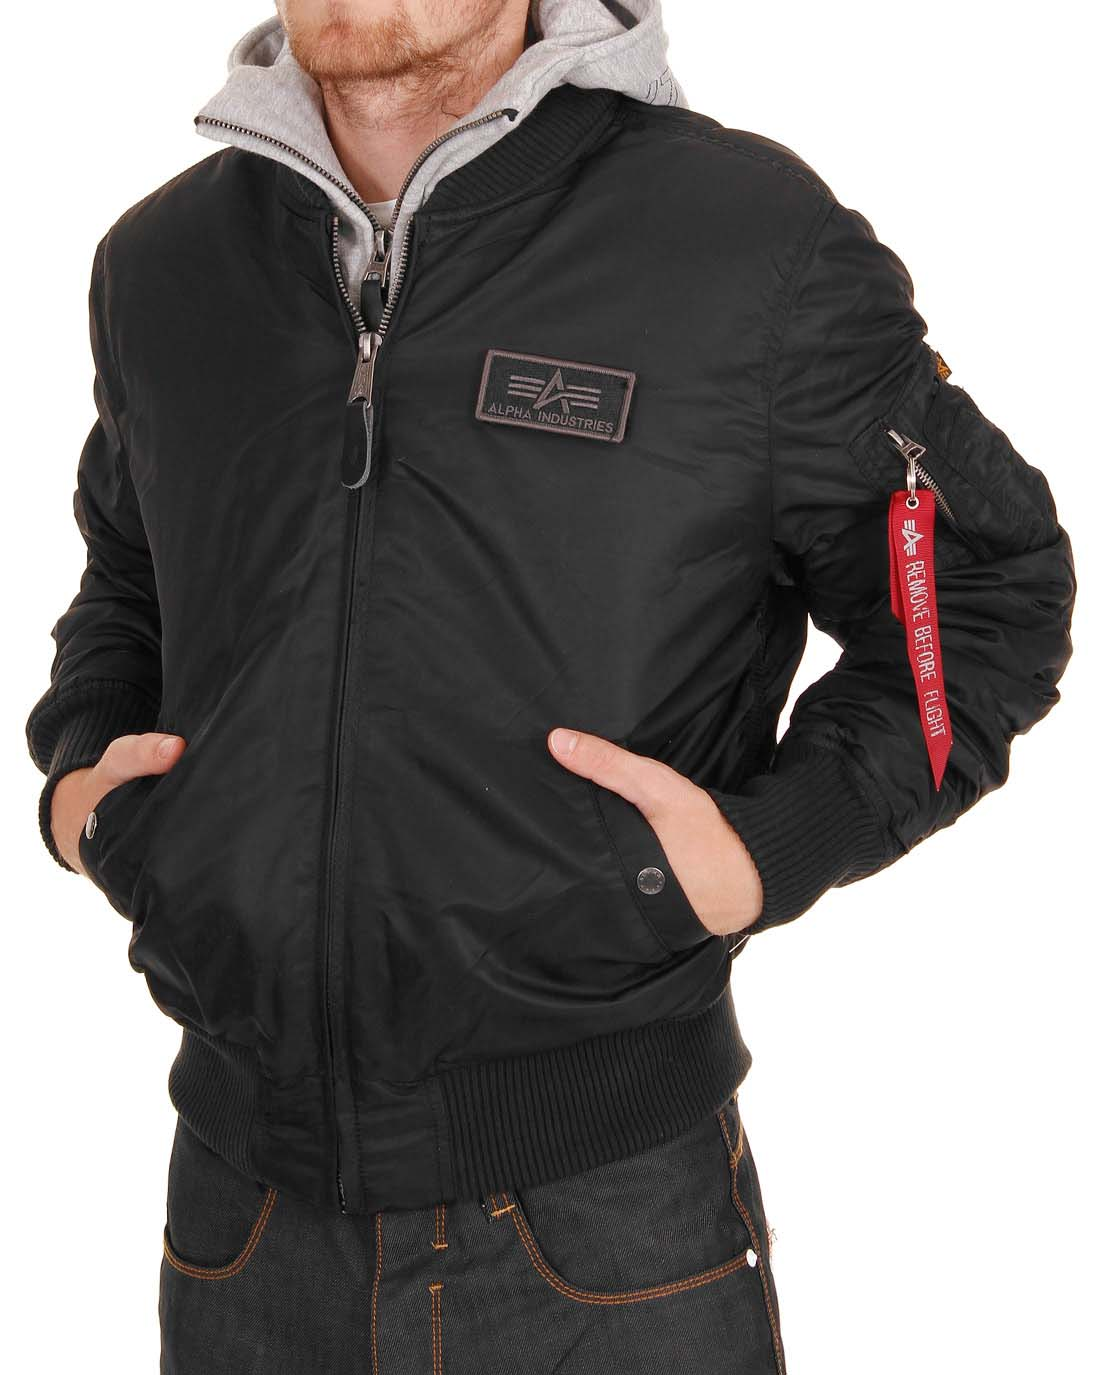 ma 1 d tec x jacket by alpha industries sale price. Black Bedroom Furniture Sets. Home Design Ideas